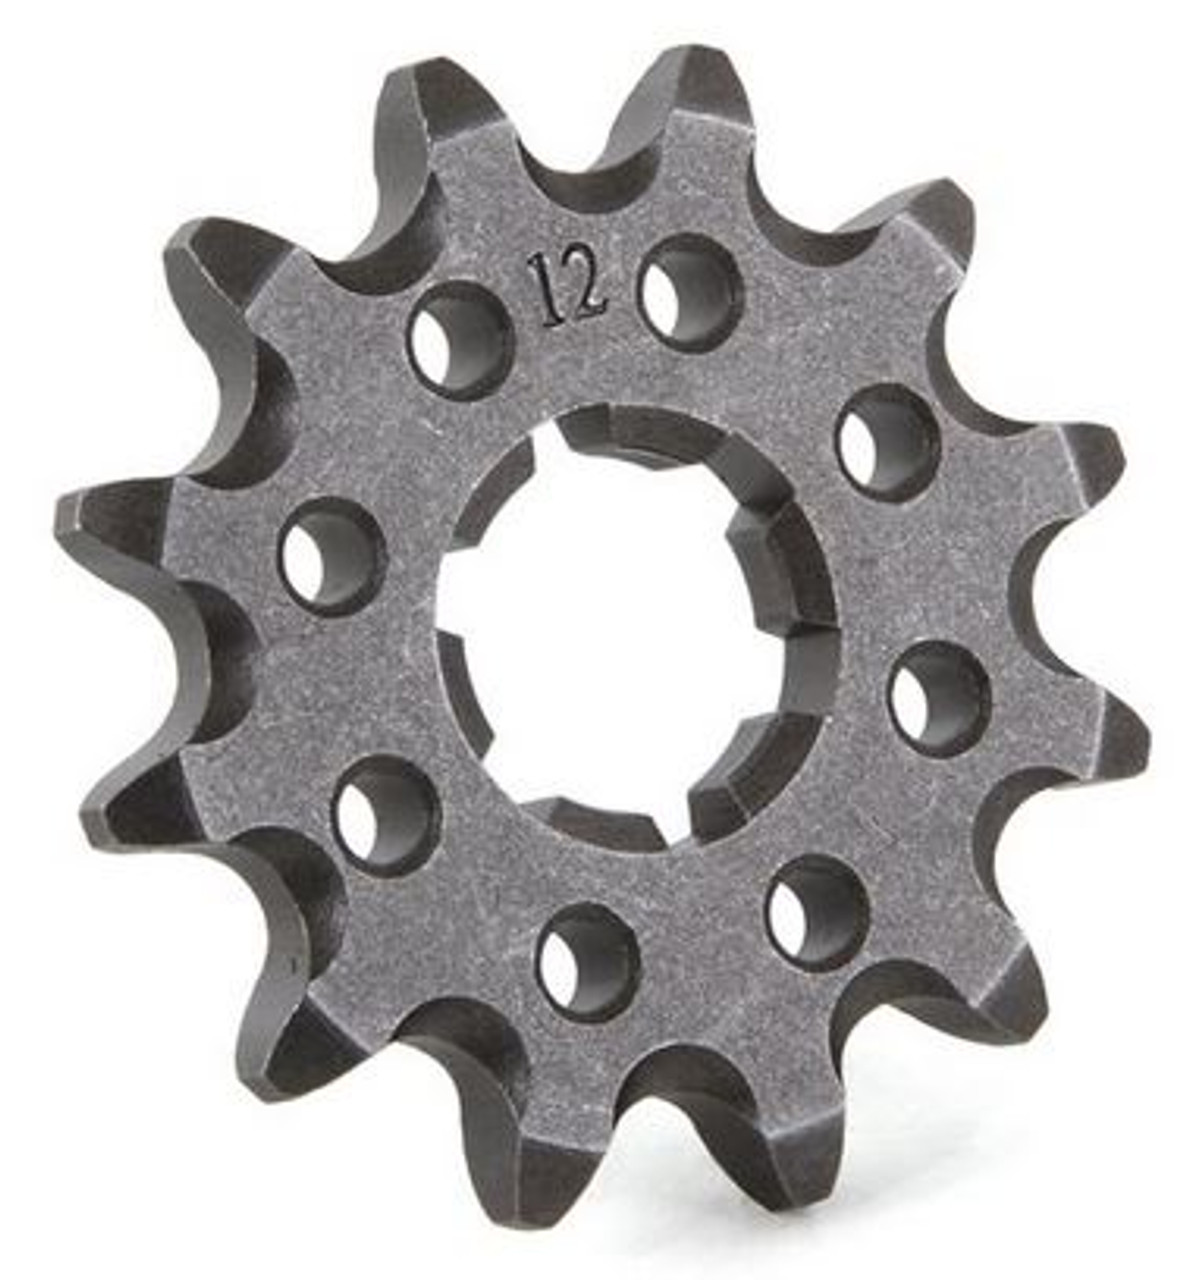 KTM 350 SXF 2011-2018 FRONT SPROCKET 13 14 15 TOOTH STEEL PROX